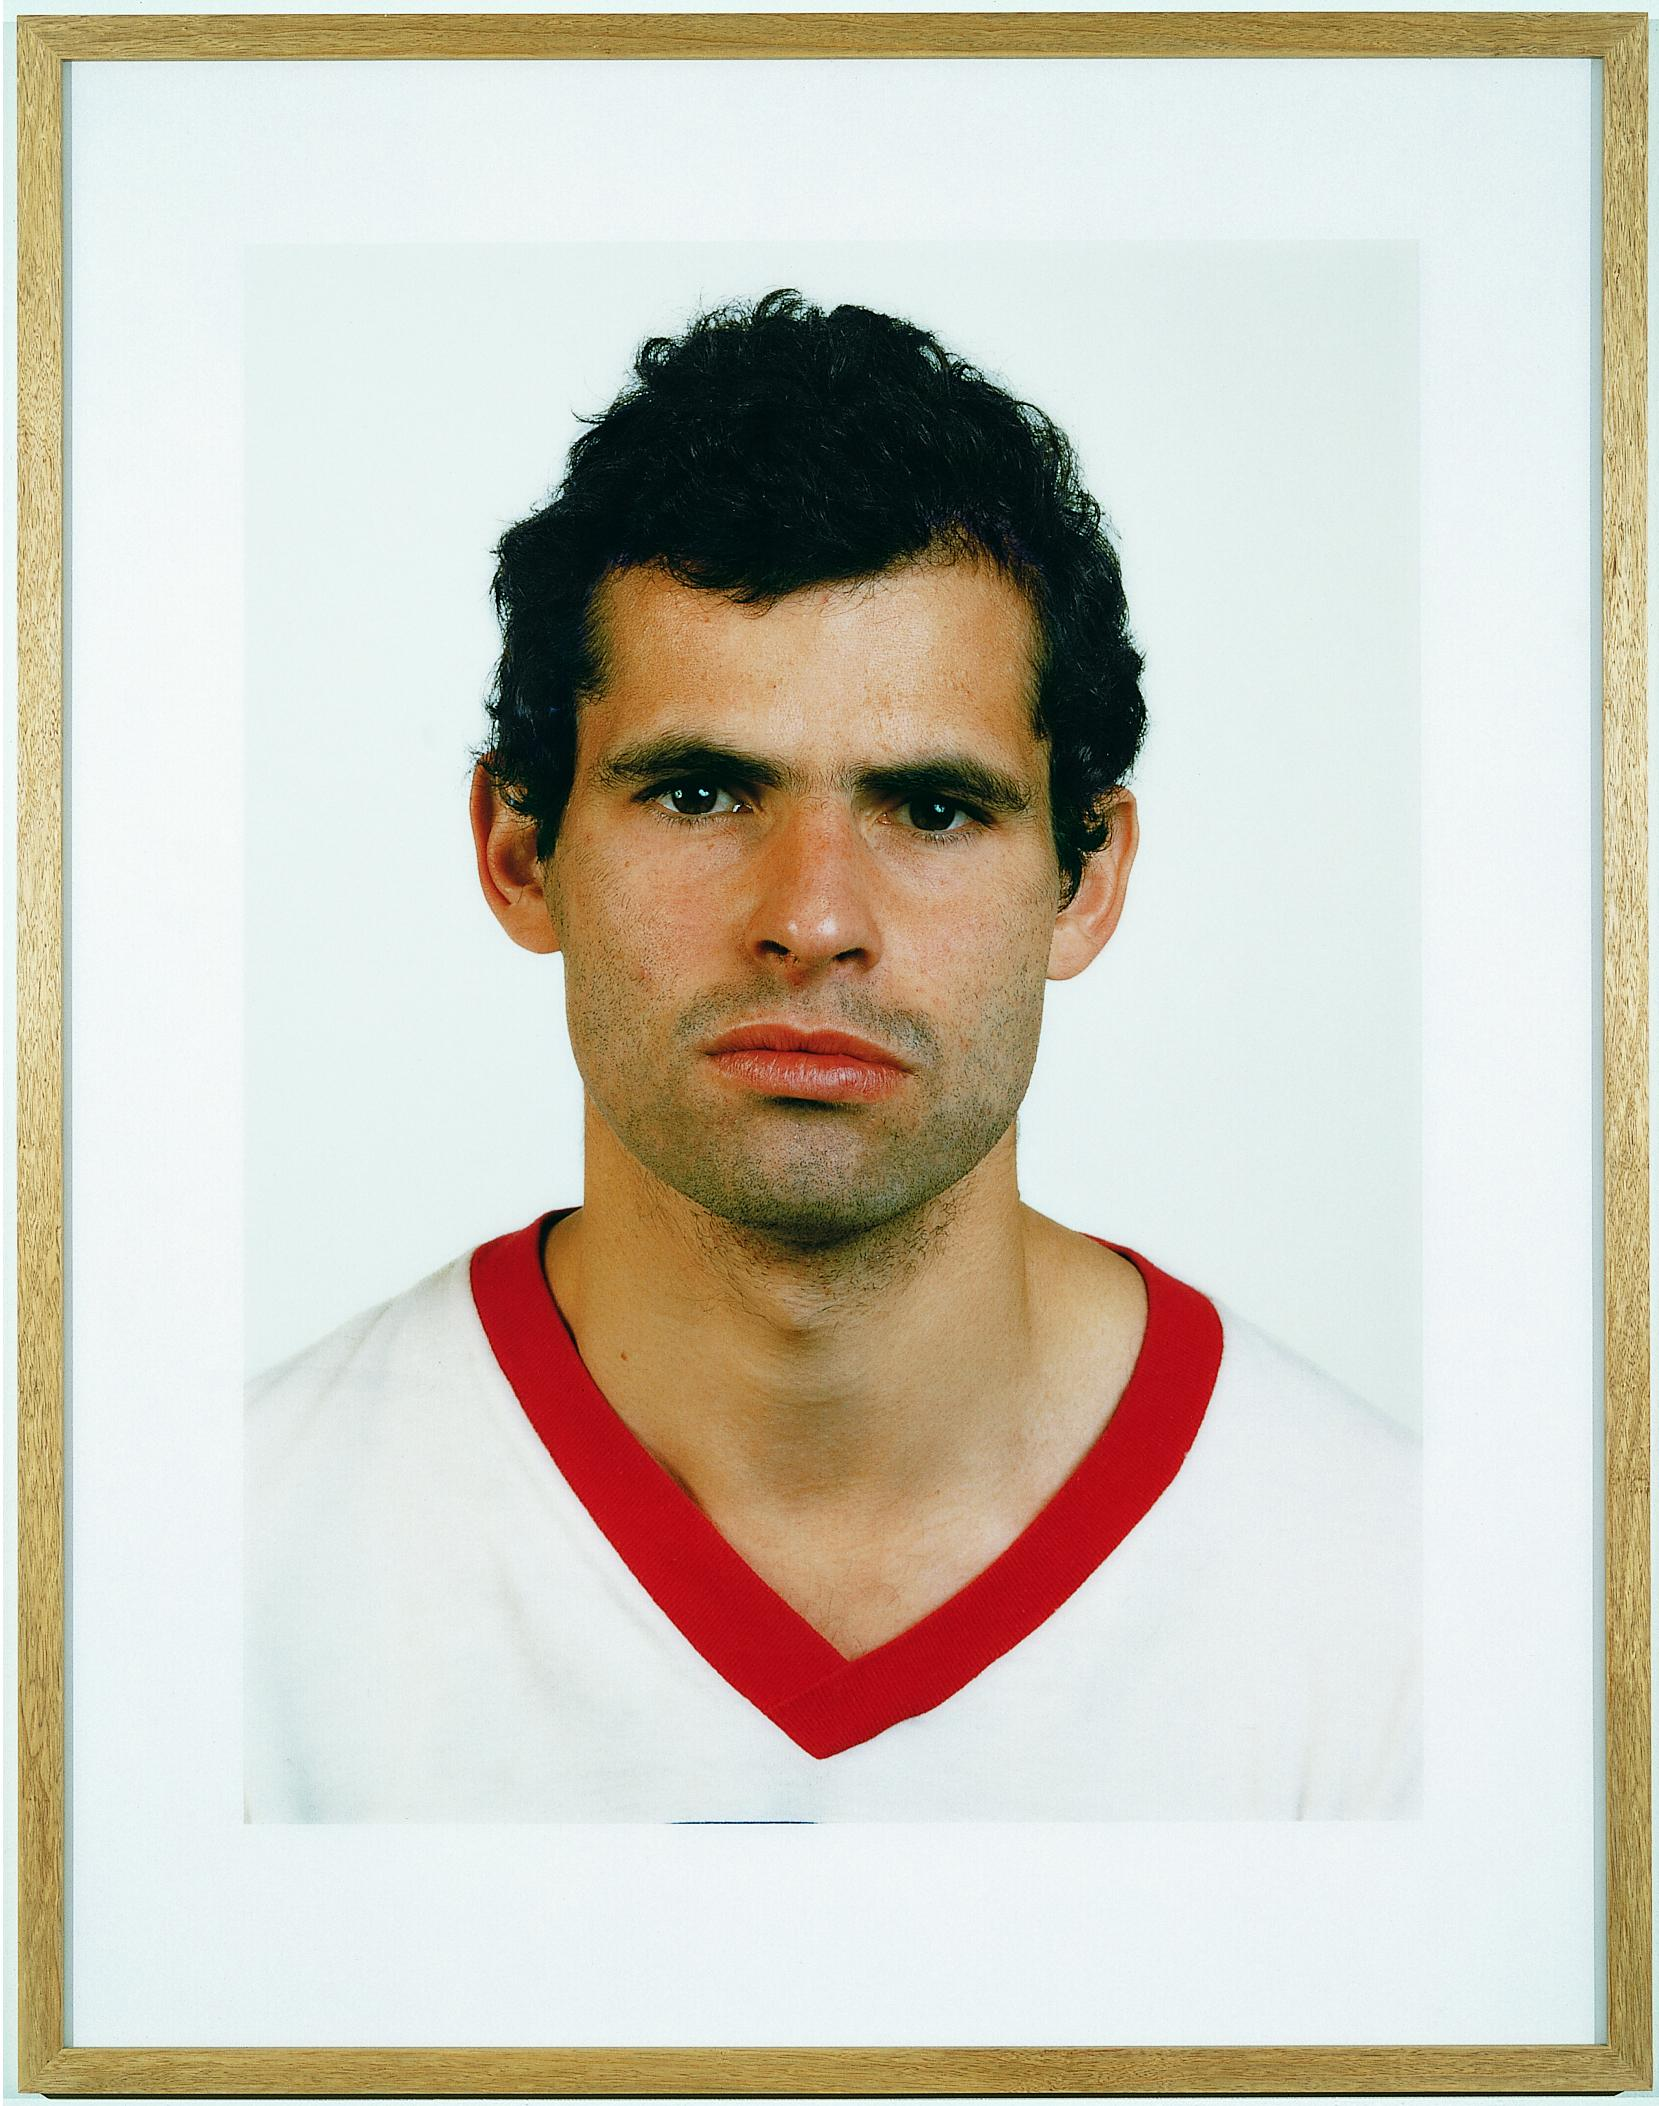 A frontal portrait features a person wearing a white shirt with a red collar.